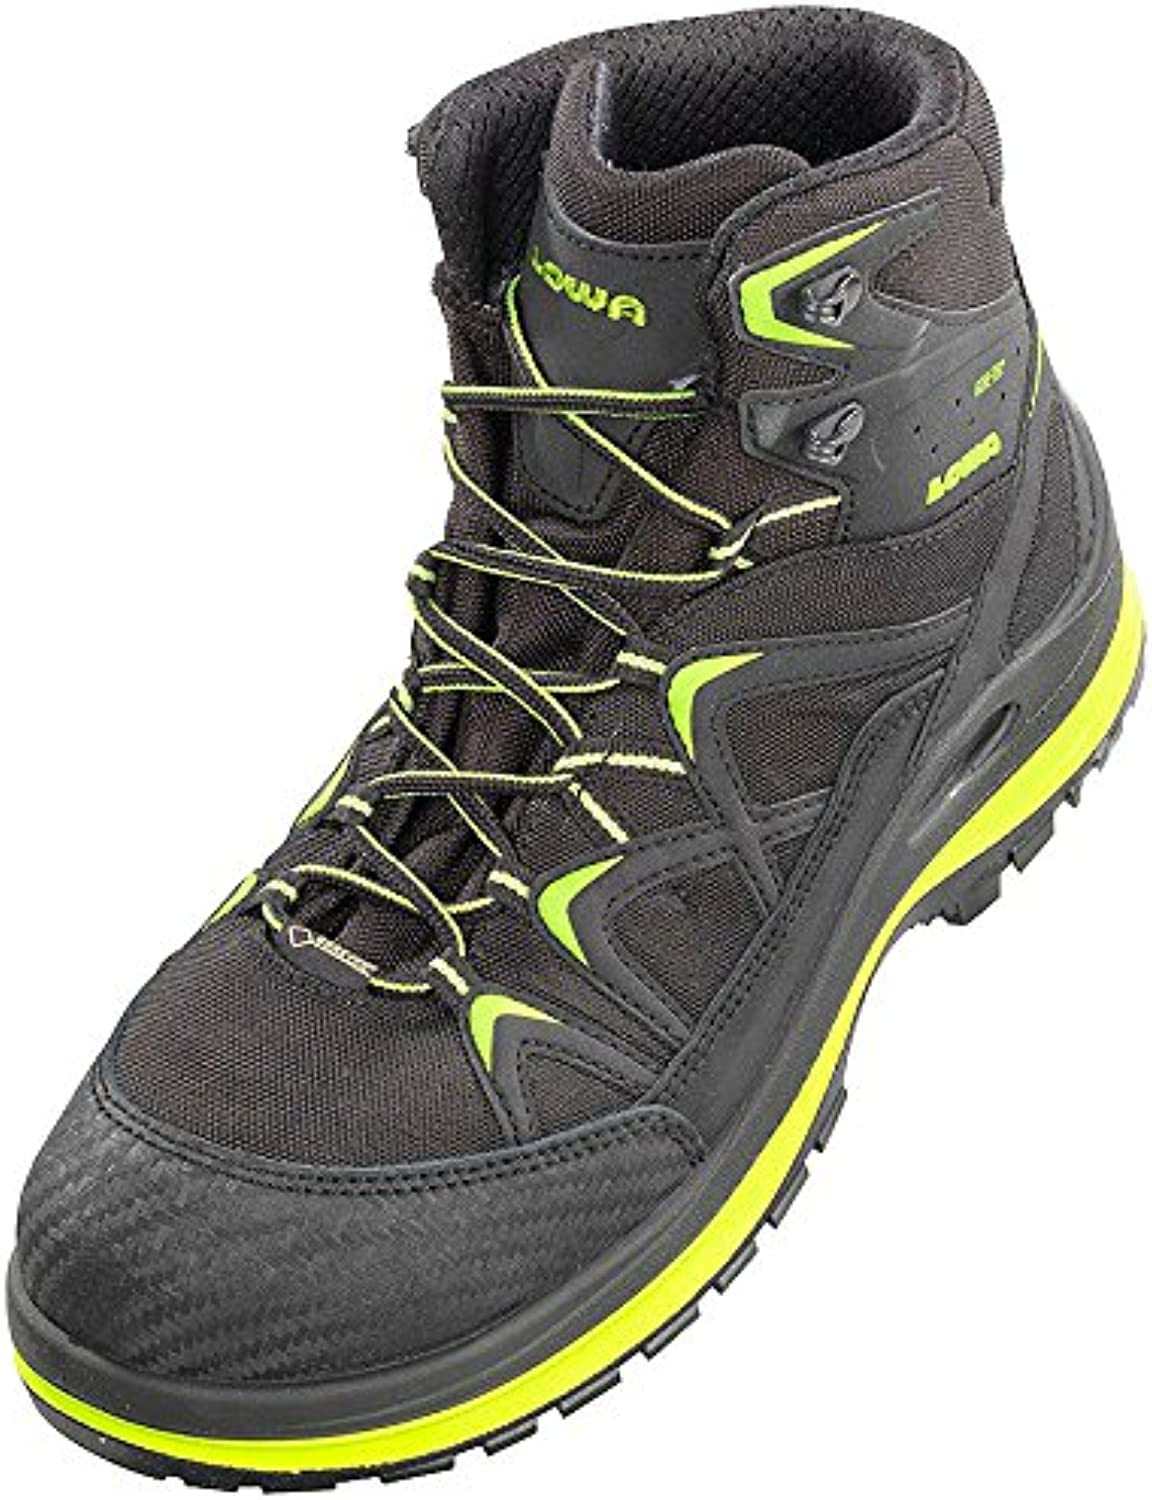 Elten 5903-36 Size 36 S3 Lowa Innox Work GTX Lime Mid  Safety shoes - Multi-Colour